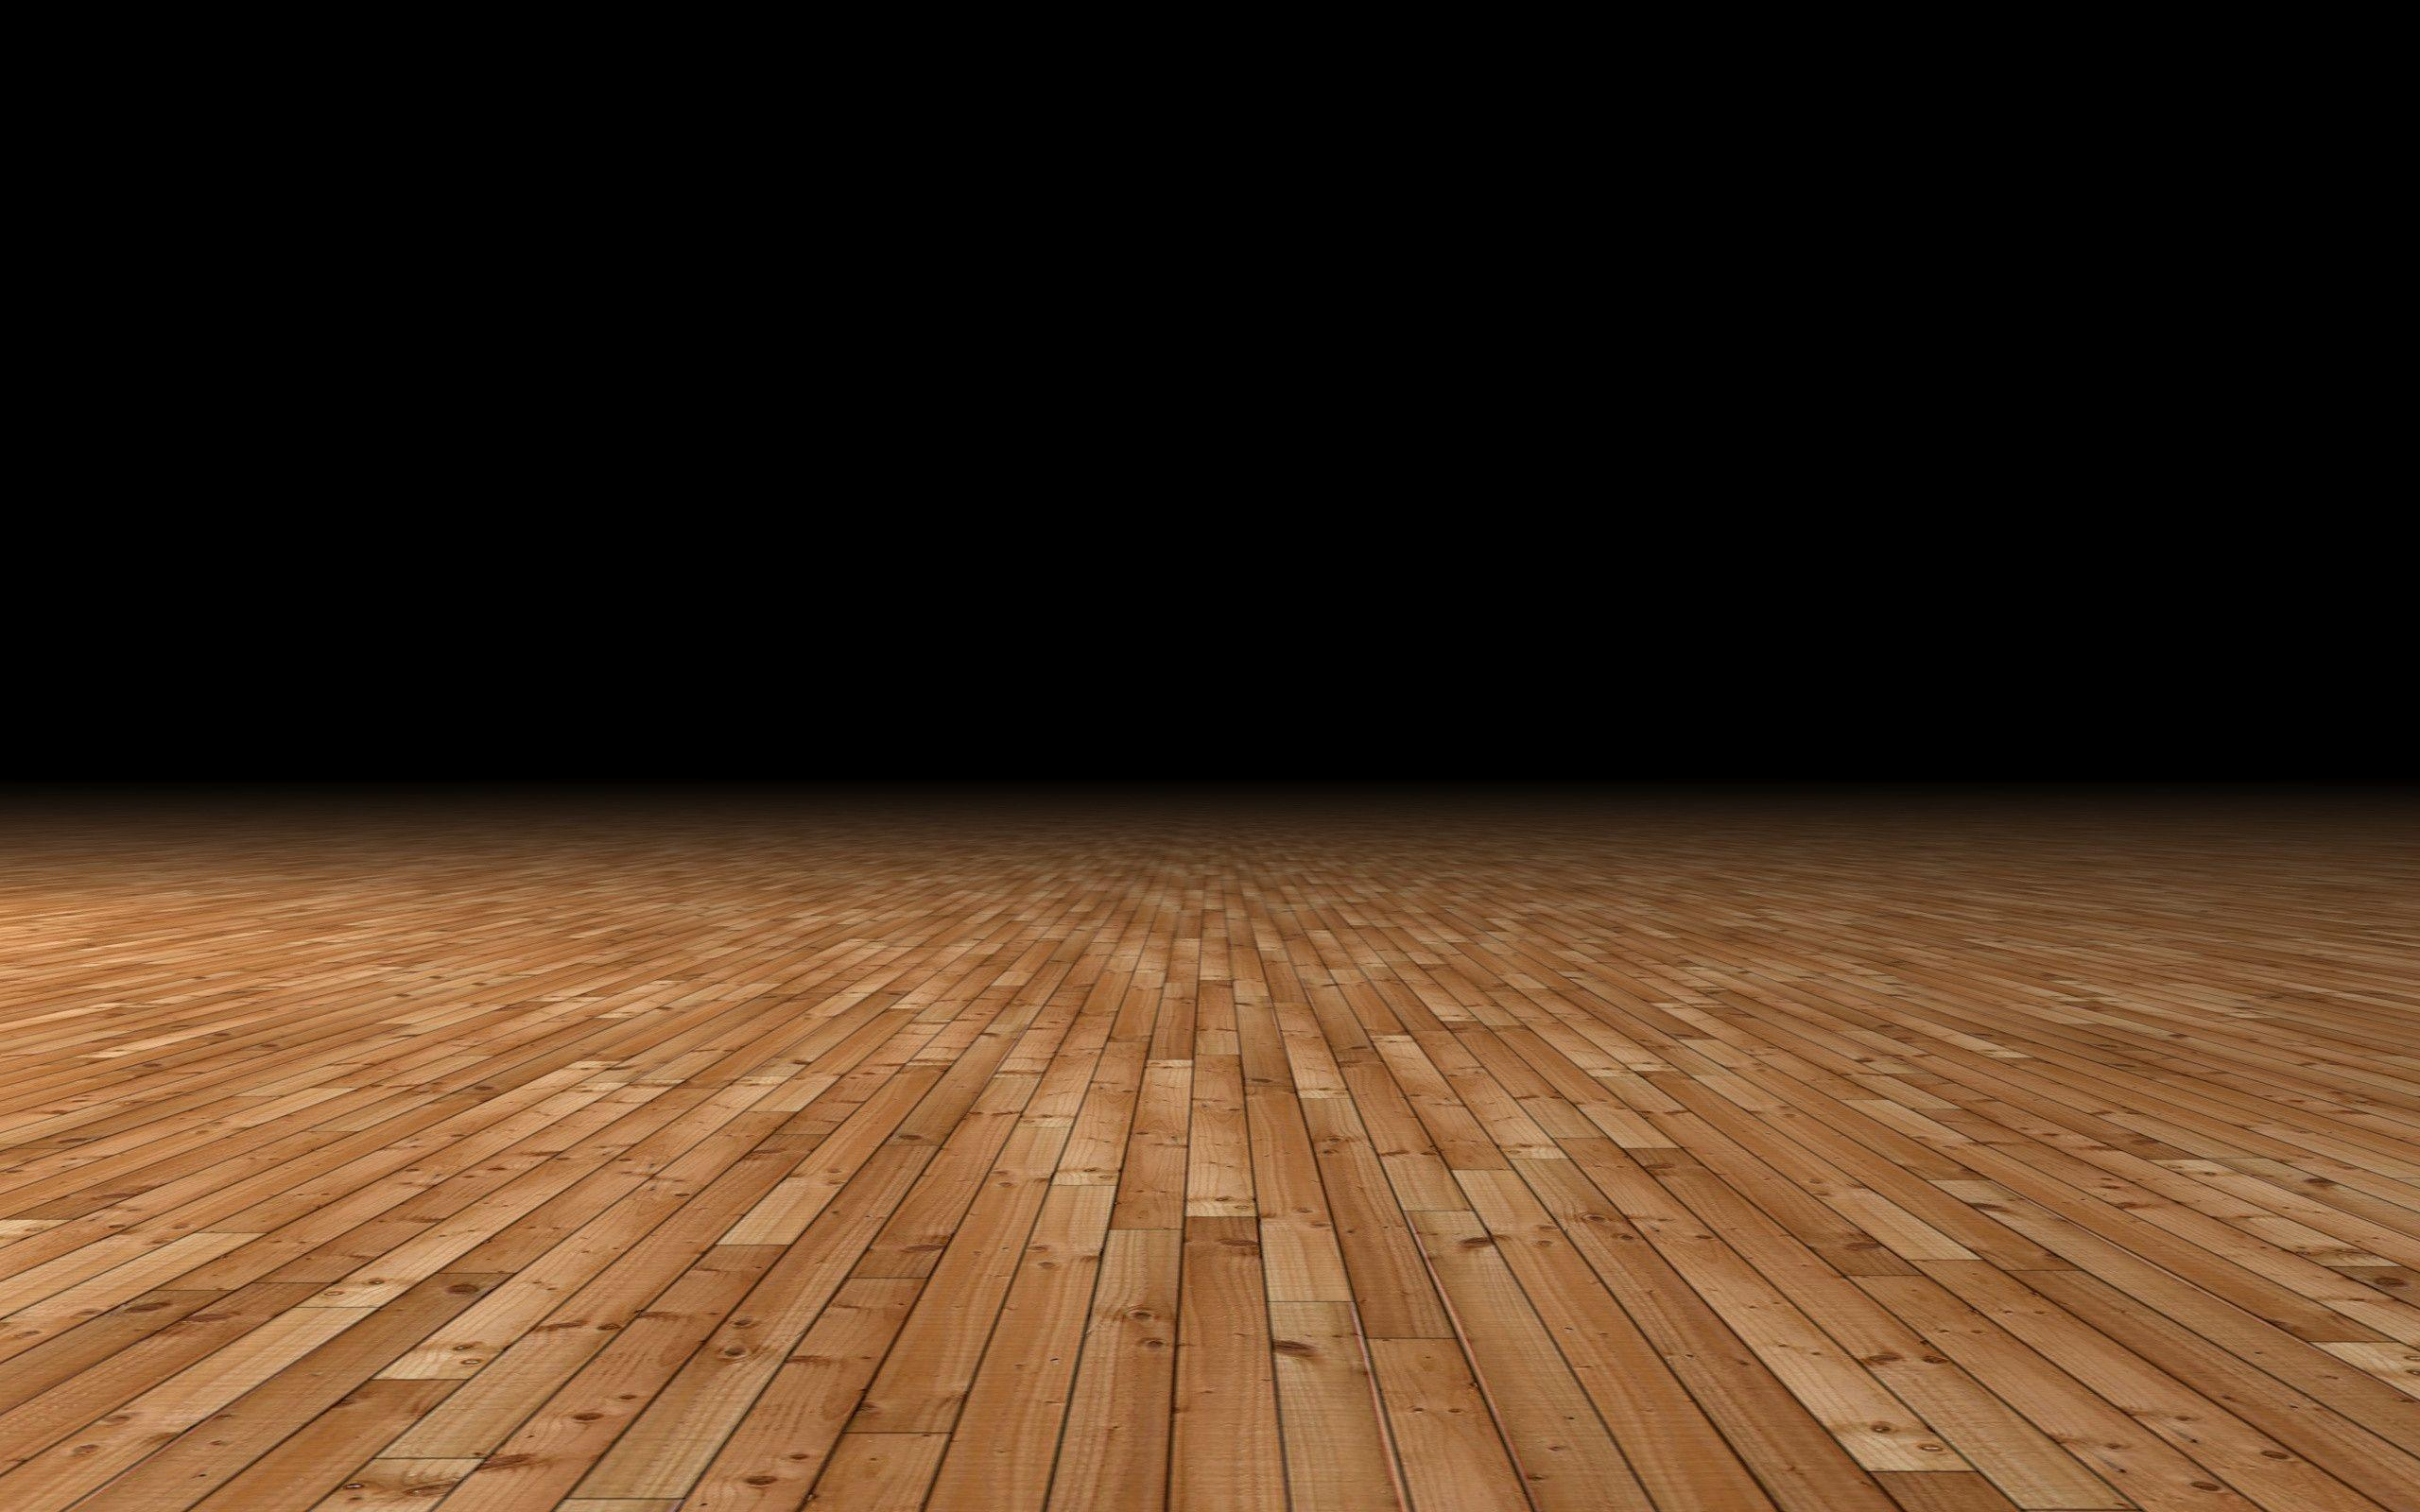 Free basketball backgrounds wallpaper cave for Floor 3d wallpaper